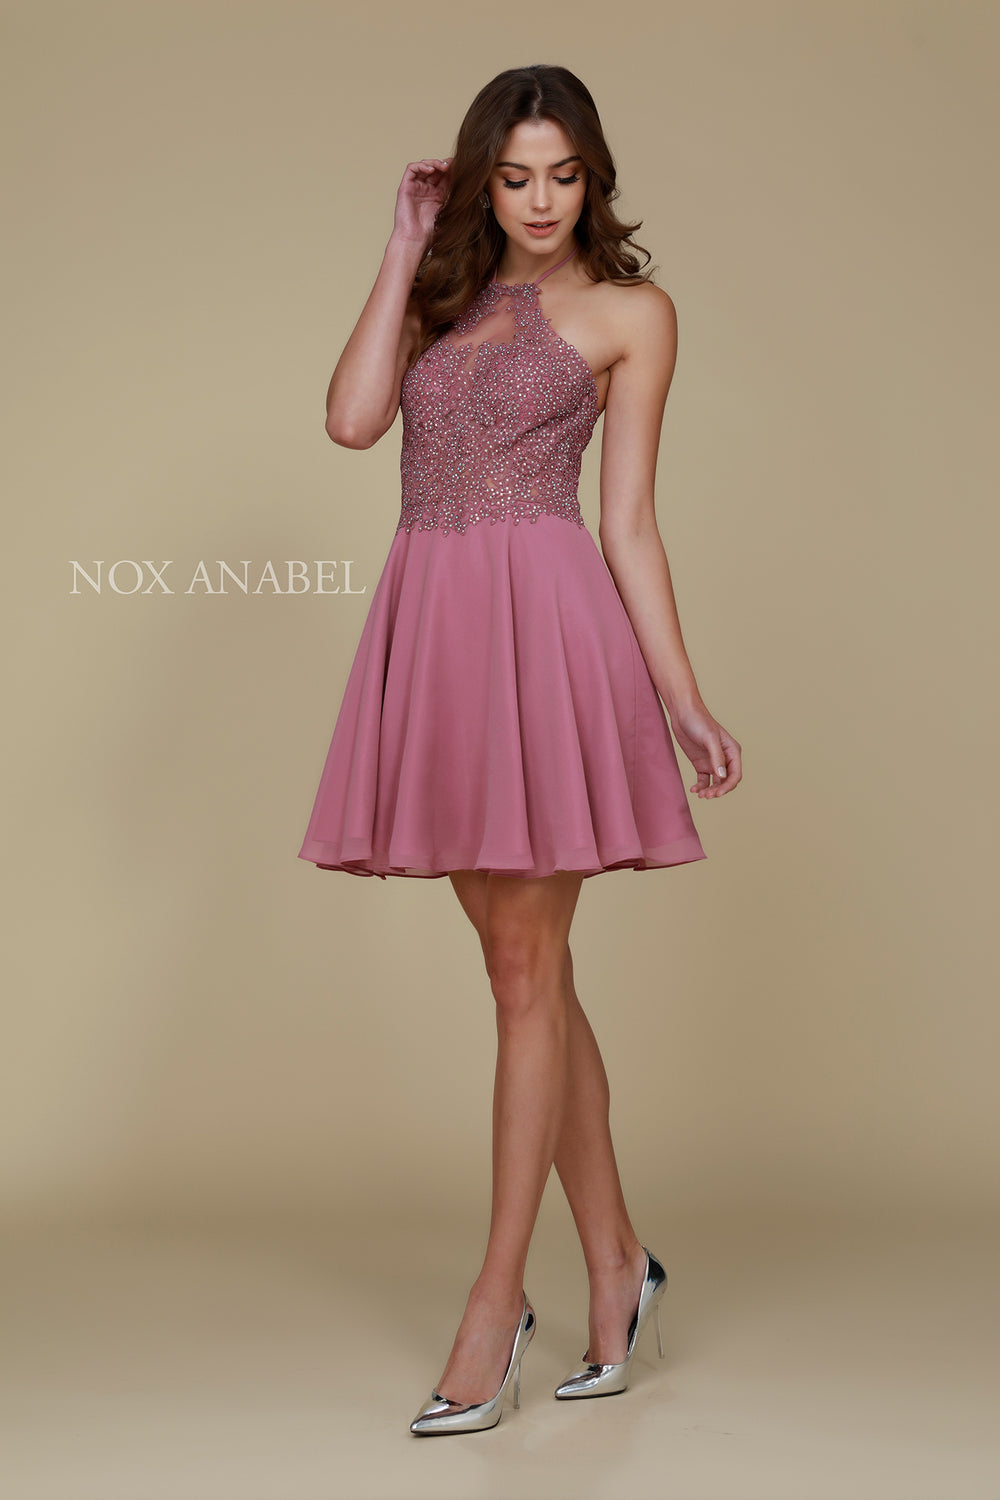 MID-OPEN BACK APPLIQUE HALTER NECK A-LINE PROM DRESS_G657 BY NARIANNA